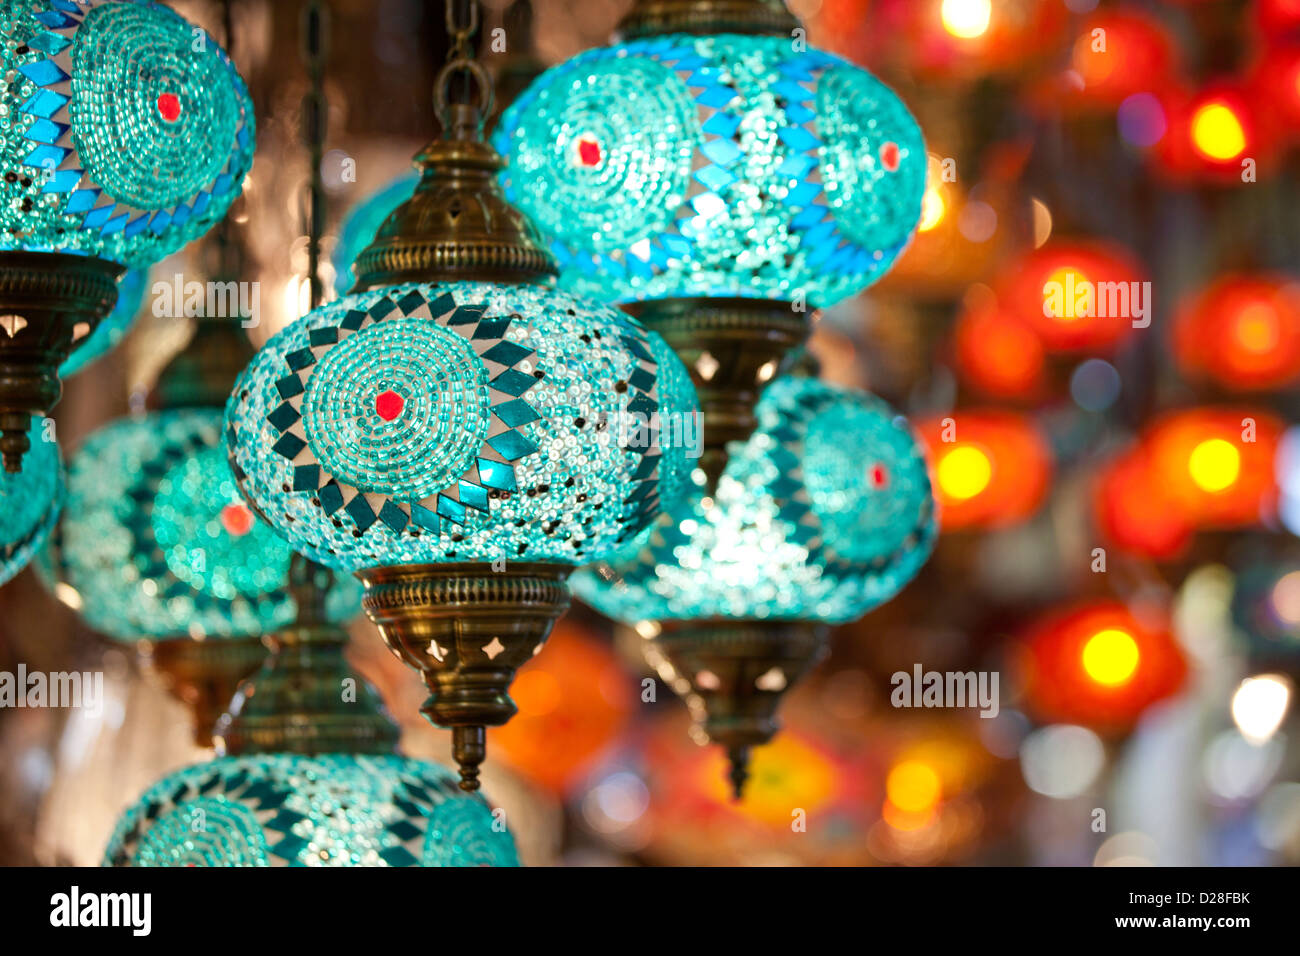 Colourful electric turkish glass lanterns lamps in Grand Bazaar Kapali Carsi Kapalicarsi ( Covered Market ) in Istanbul, - Stock Image